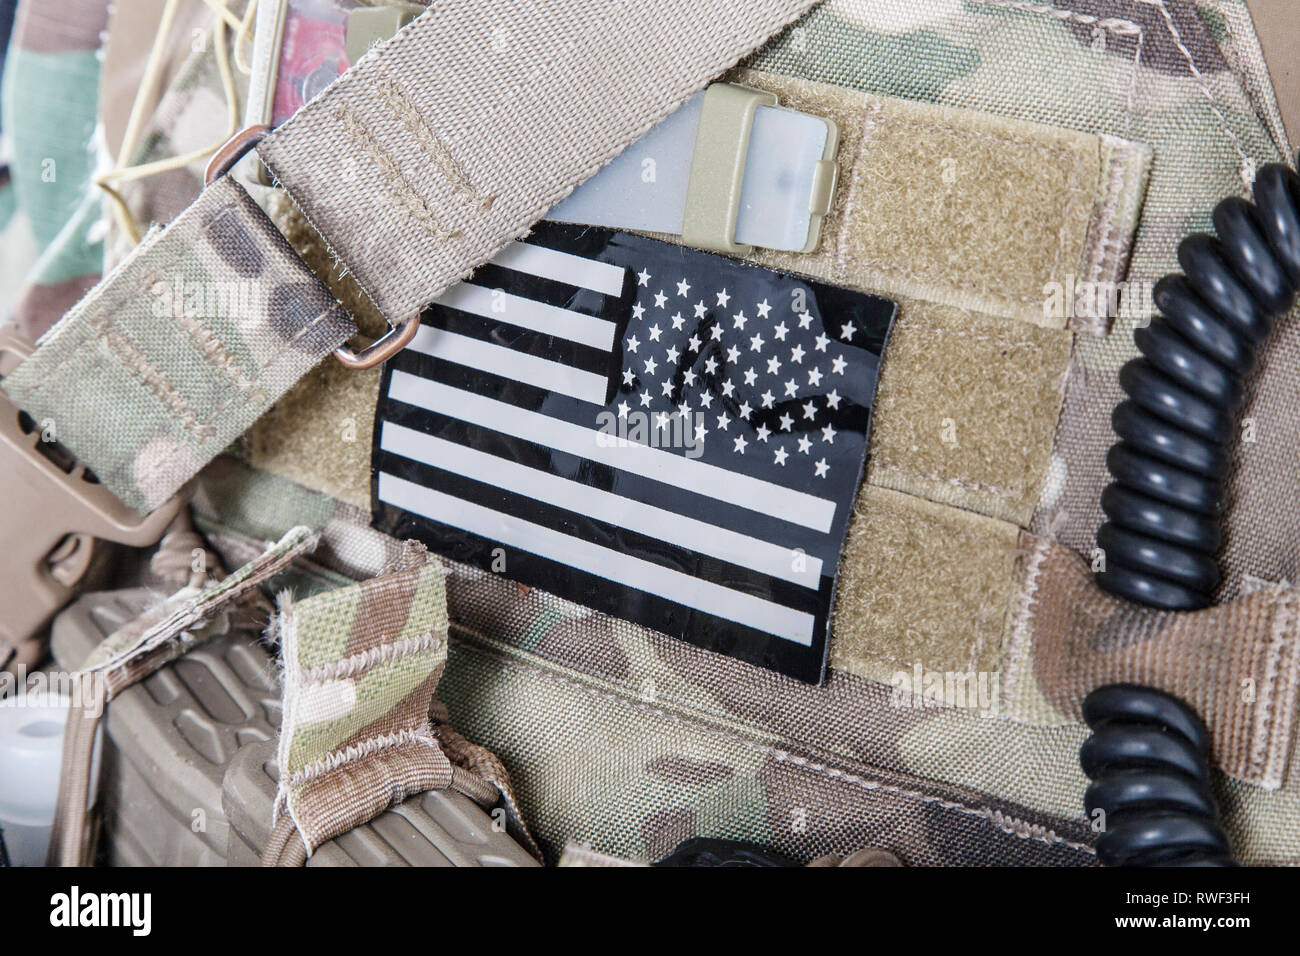 American flag military patch on camouflage uniform of U.S. Armed Forces. - Stock Image